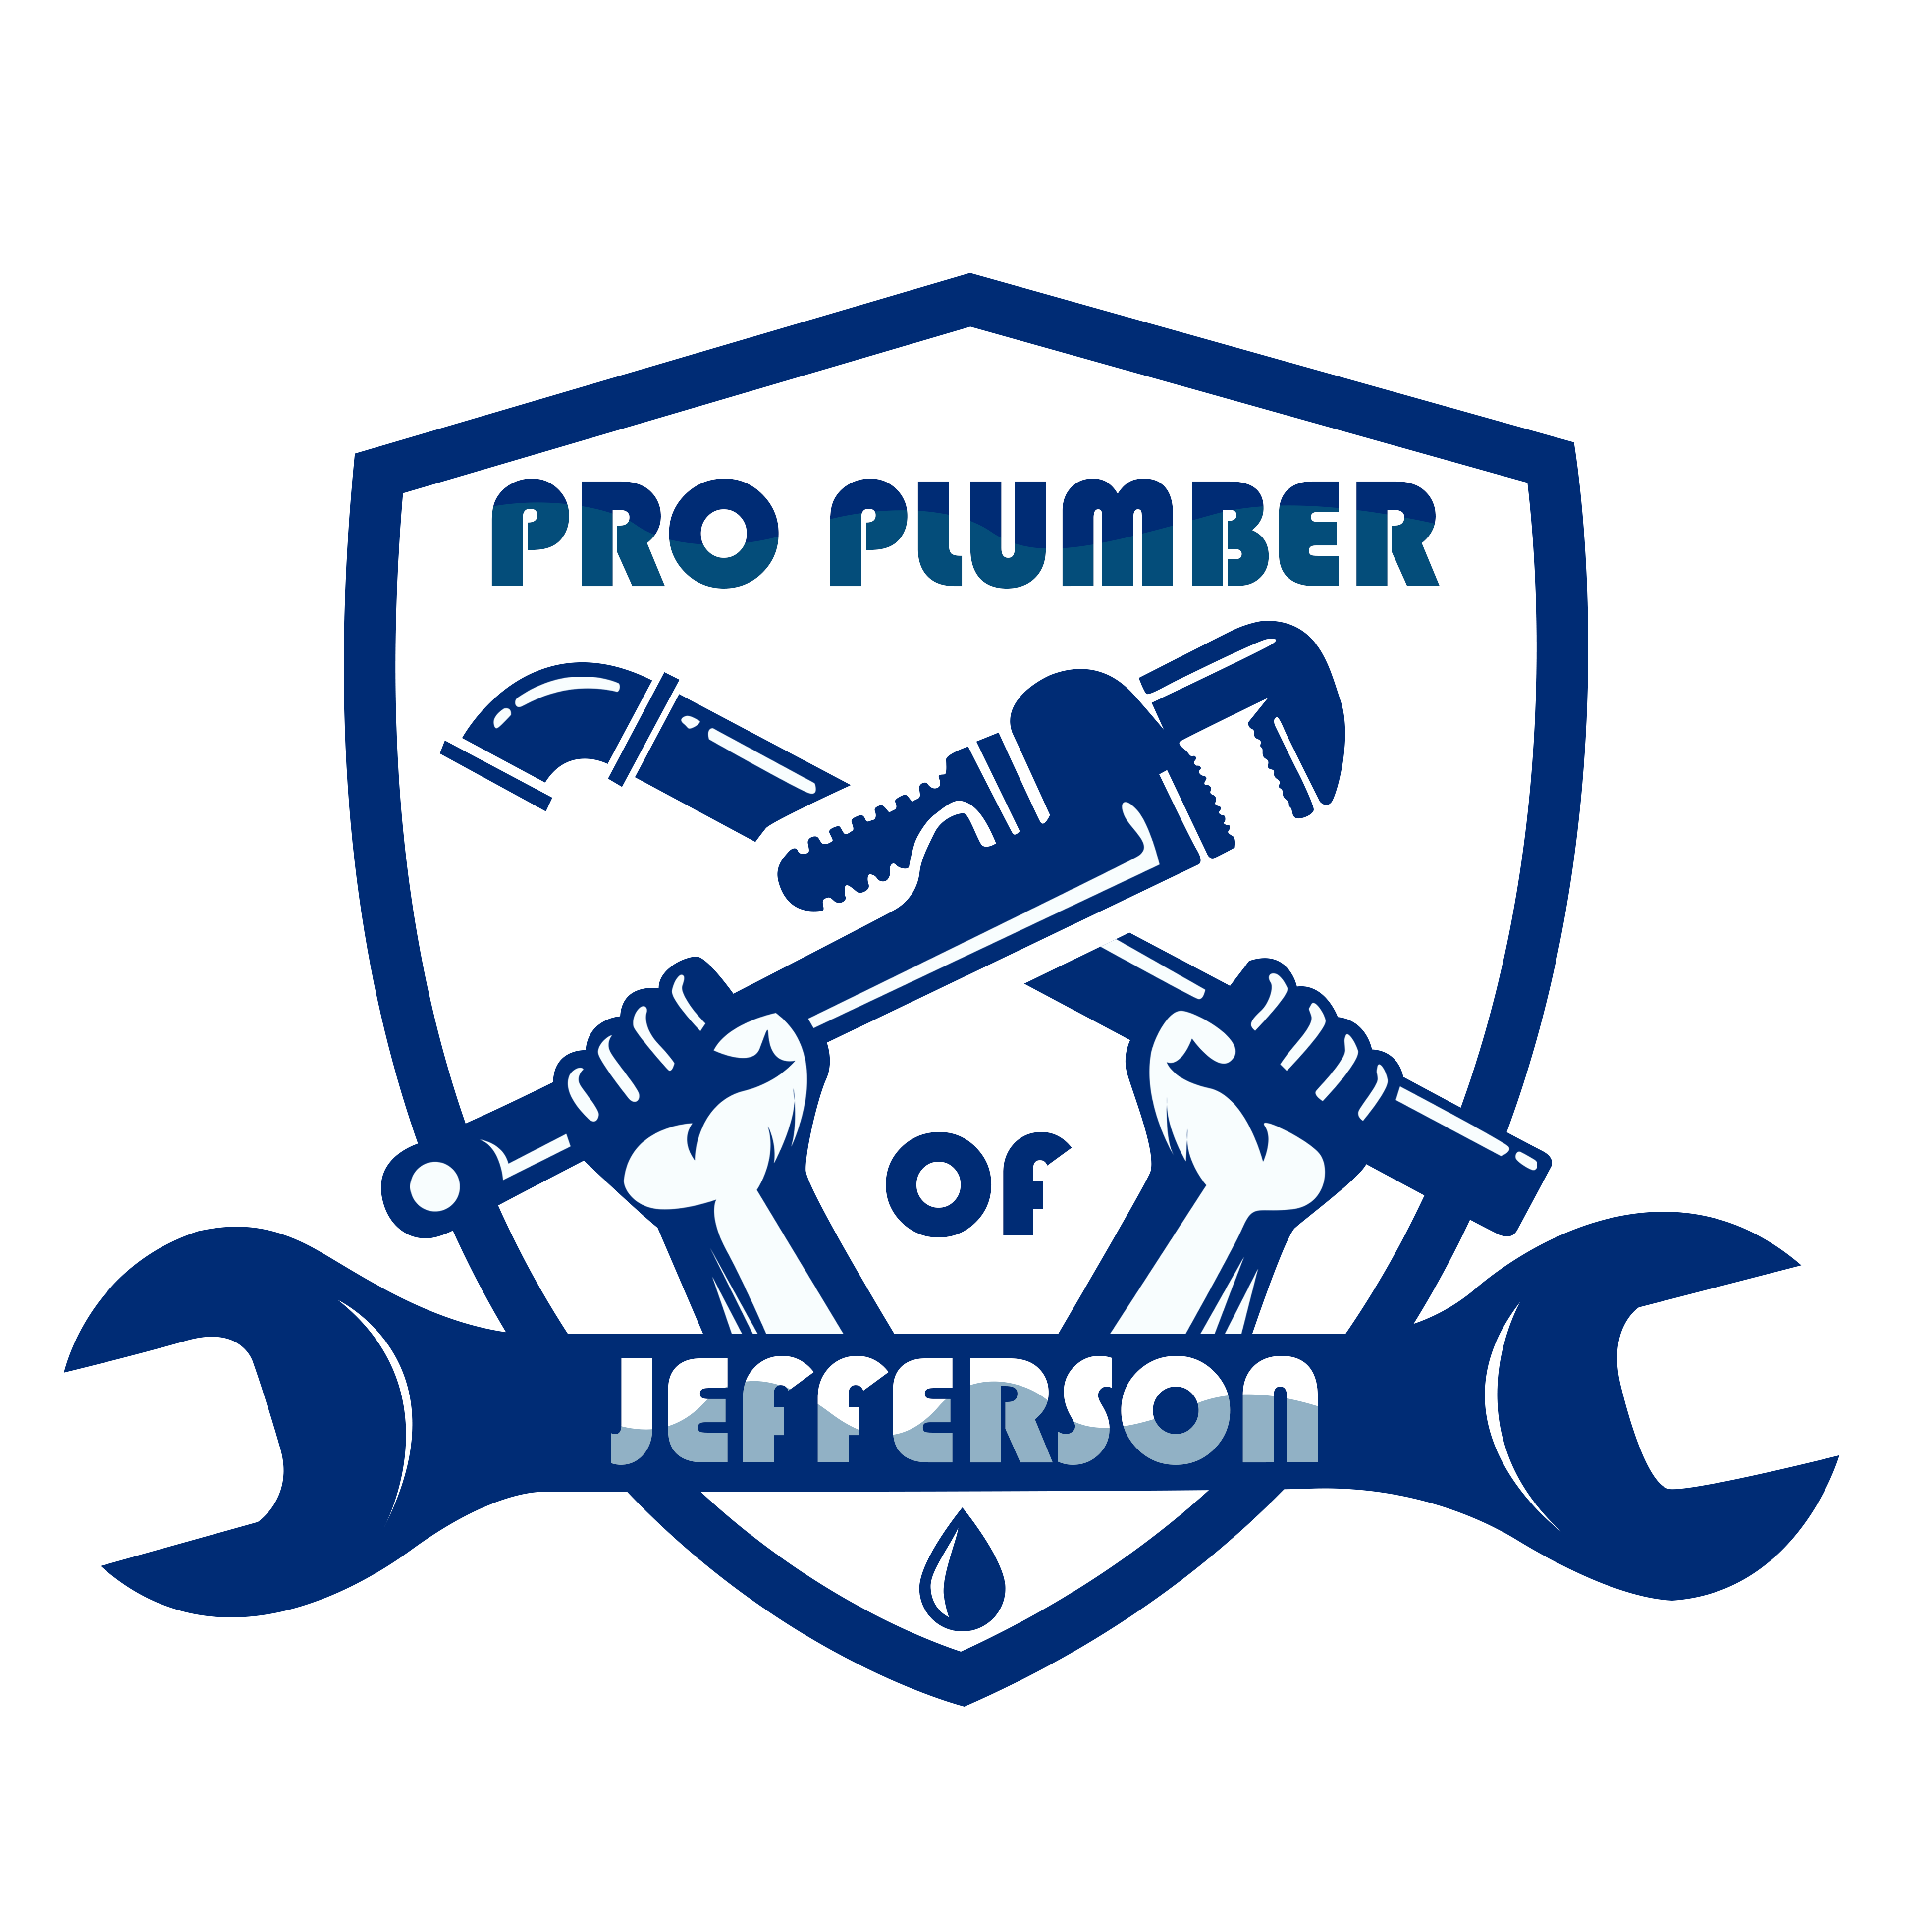 Pro Plumber of Jefferson